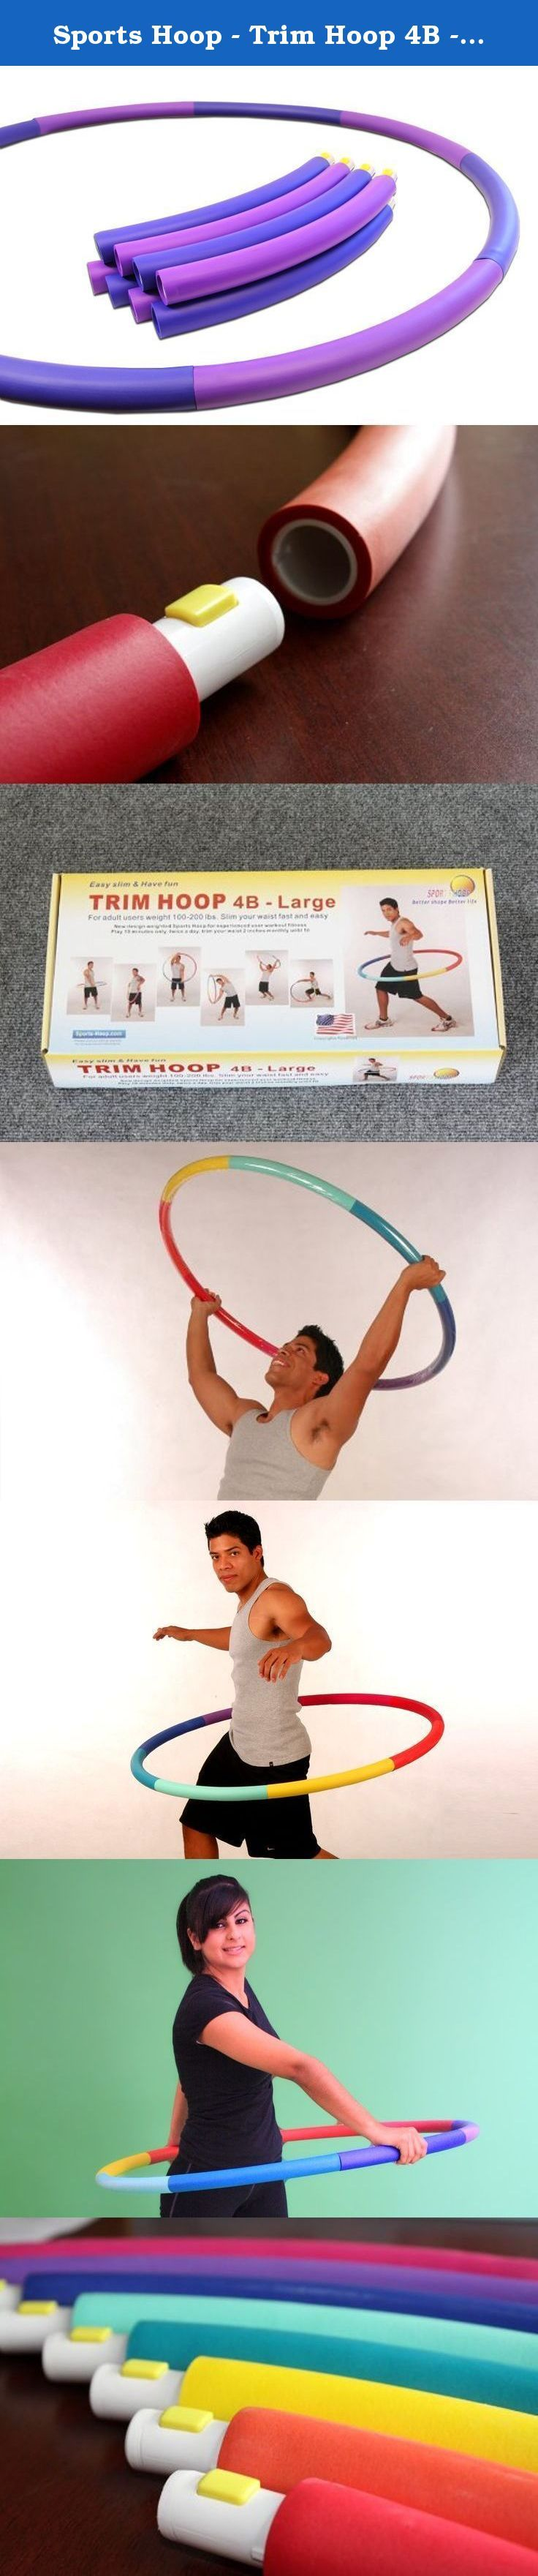 """Sports Hoop - Trim Hoop 4B - 3.9lb (Dia.41"""") Large [Select Colors], Weighted Hula Hoop for Workout with 50 minutes Workout Lesson DVD. The Trim Hoop® 4B is the largest Trim Hoop® specifically designed for exercise purposes and is a perfect hoop for beginners looking to start a new healthy lifestyle or stay in shape. Adults 100-200lb (45-90kg) can use the Trim Hoop® 4B for an effective weight loss and toning regime. The foam padding and high-quality, durable plastic make it both easy and..."""